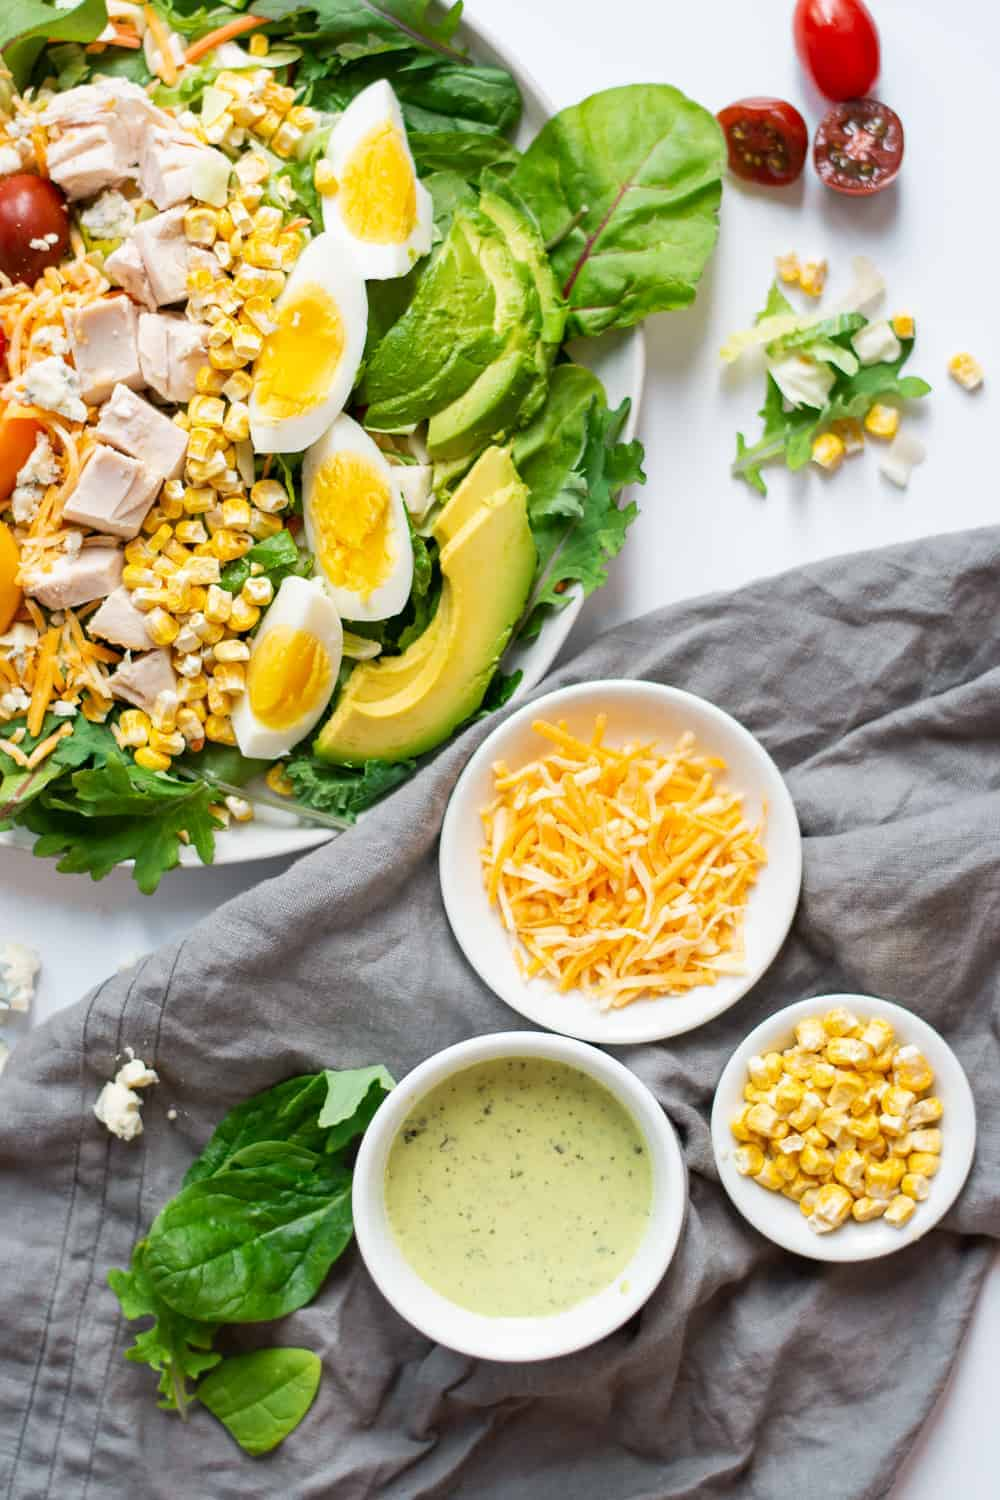 5-Minute Rotisserie Chicken Cobb Salad Recipe (Gluten Free) | Cobb Salad Recipe, Rotisserie Chicken Recipe Idea, Healthy Salad Recipe, 5-Minute Dinner Recipe, Quick Dinner Recipe, Gluten Free Dinner Recipe #cobbsalad #5minutedinner #quickdinnerrecipe || The Butter Half via @thebutterhalf